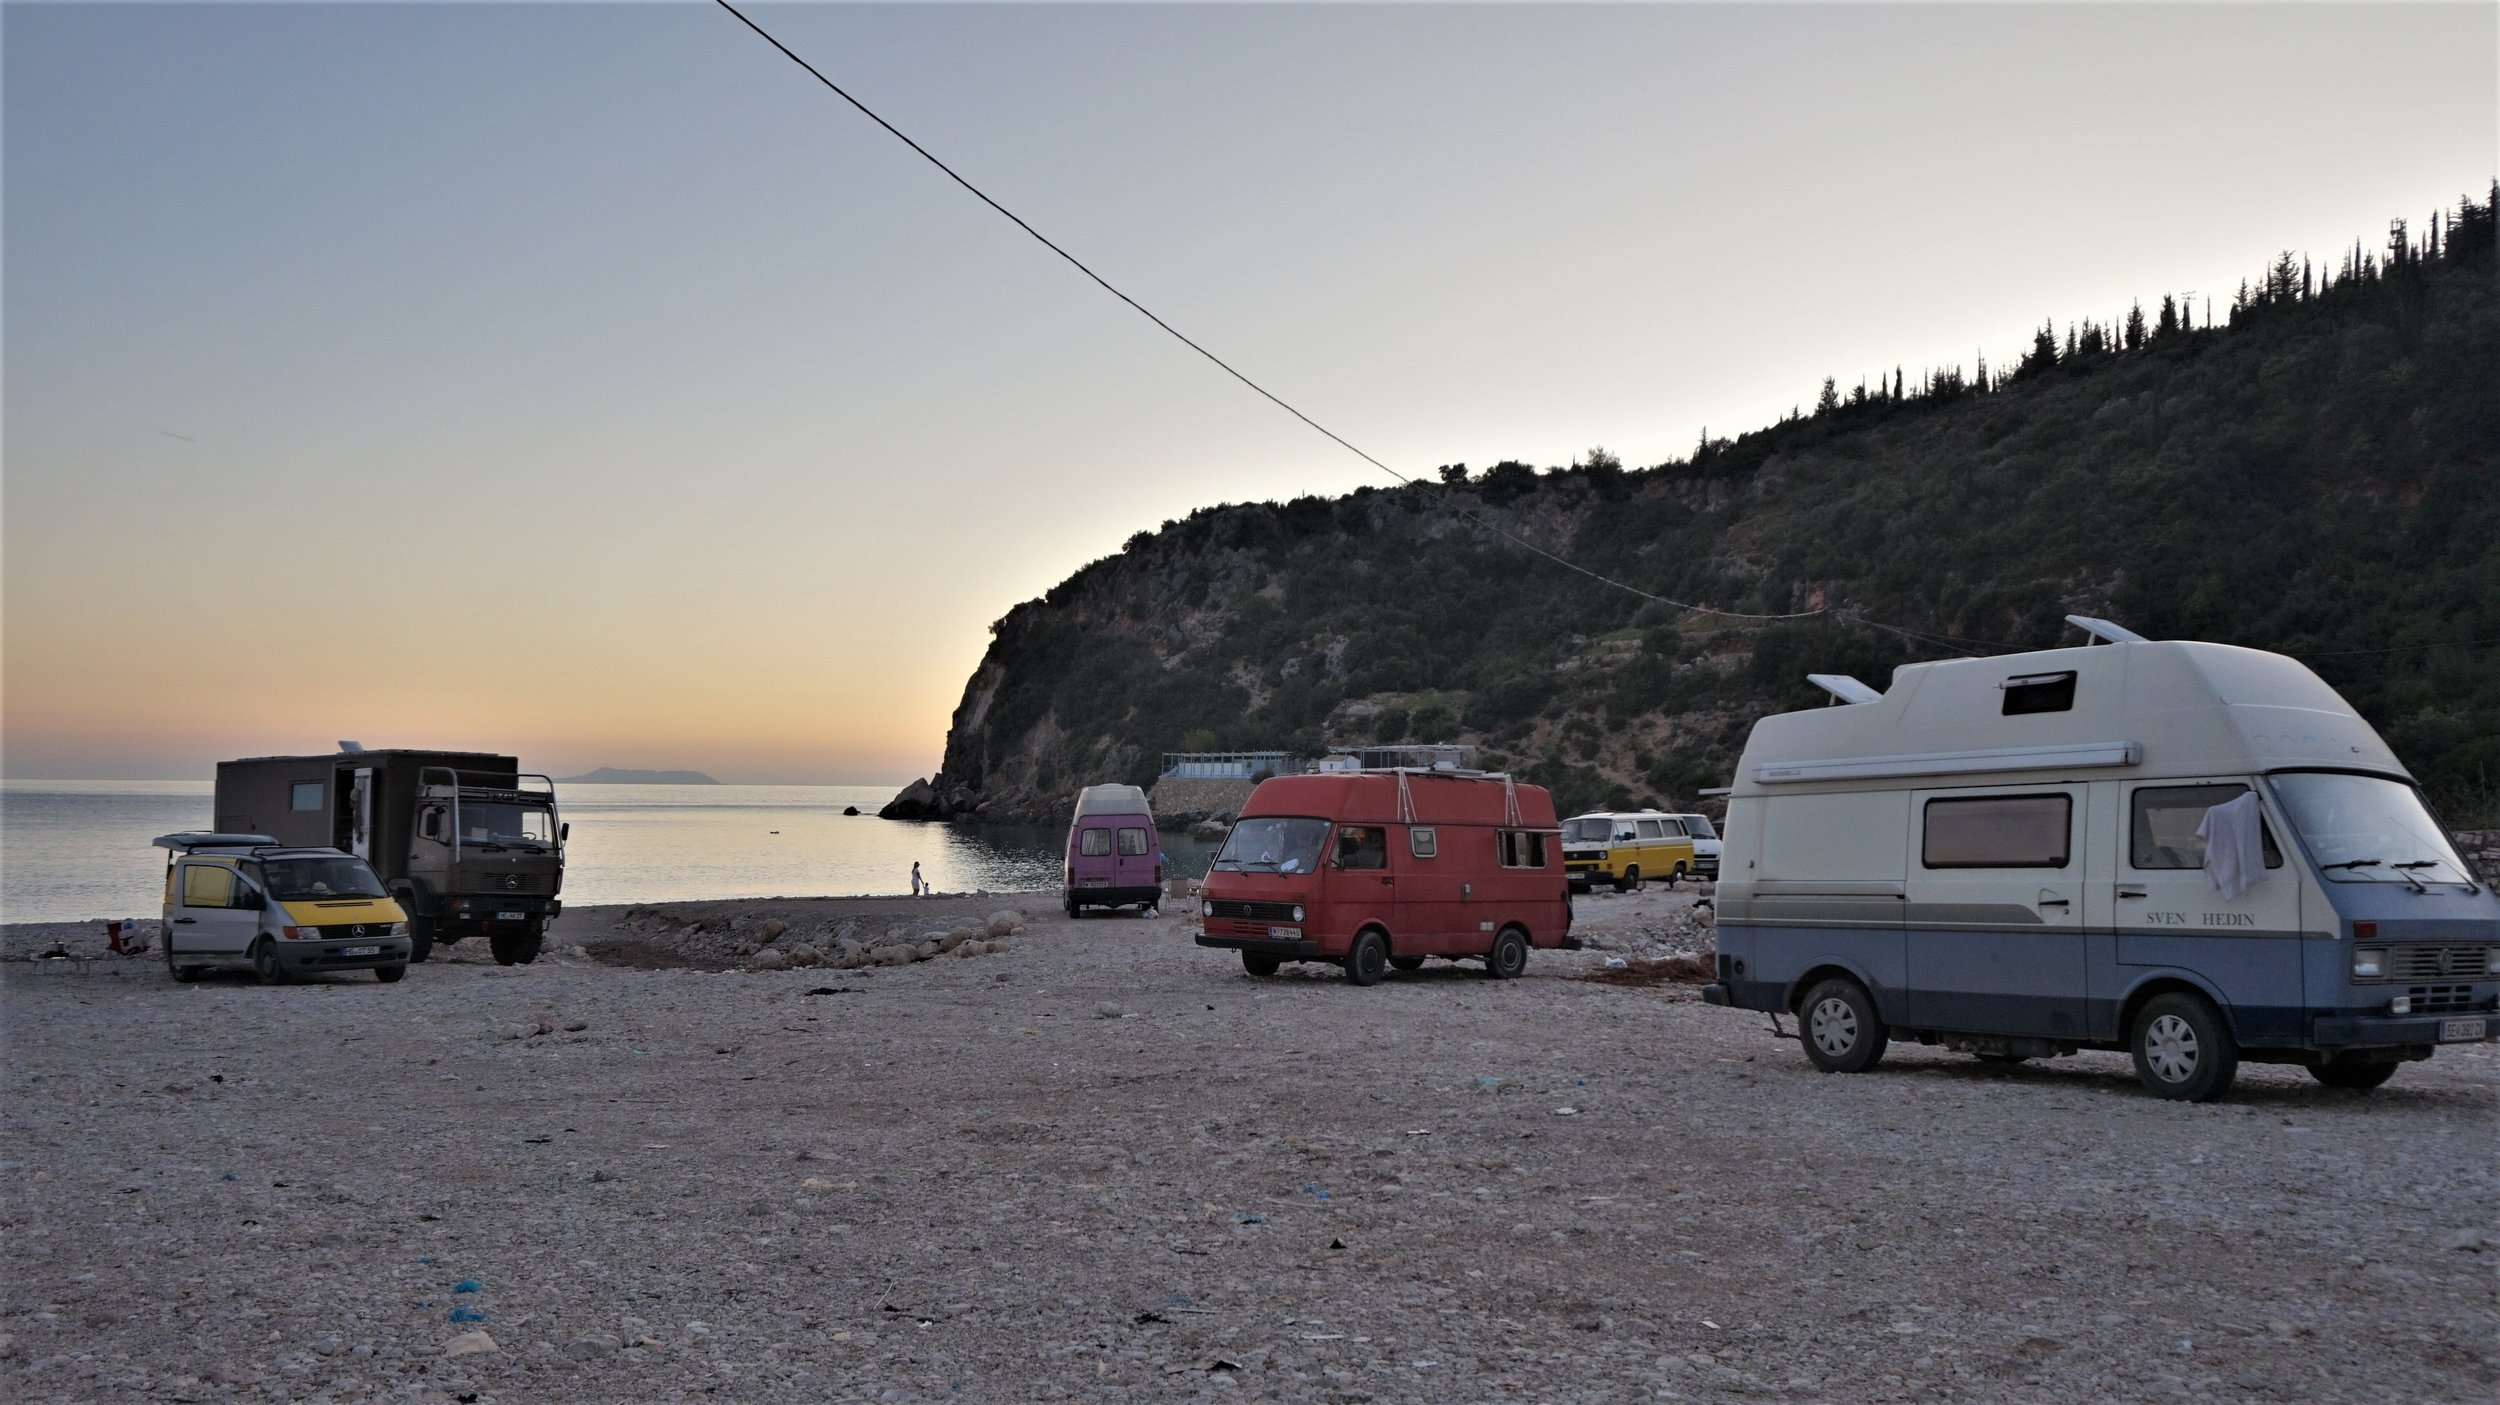 free camping in Albania, wild camping Albania spots